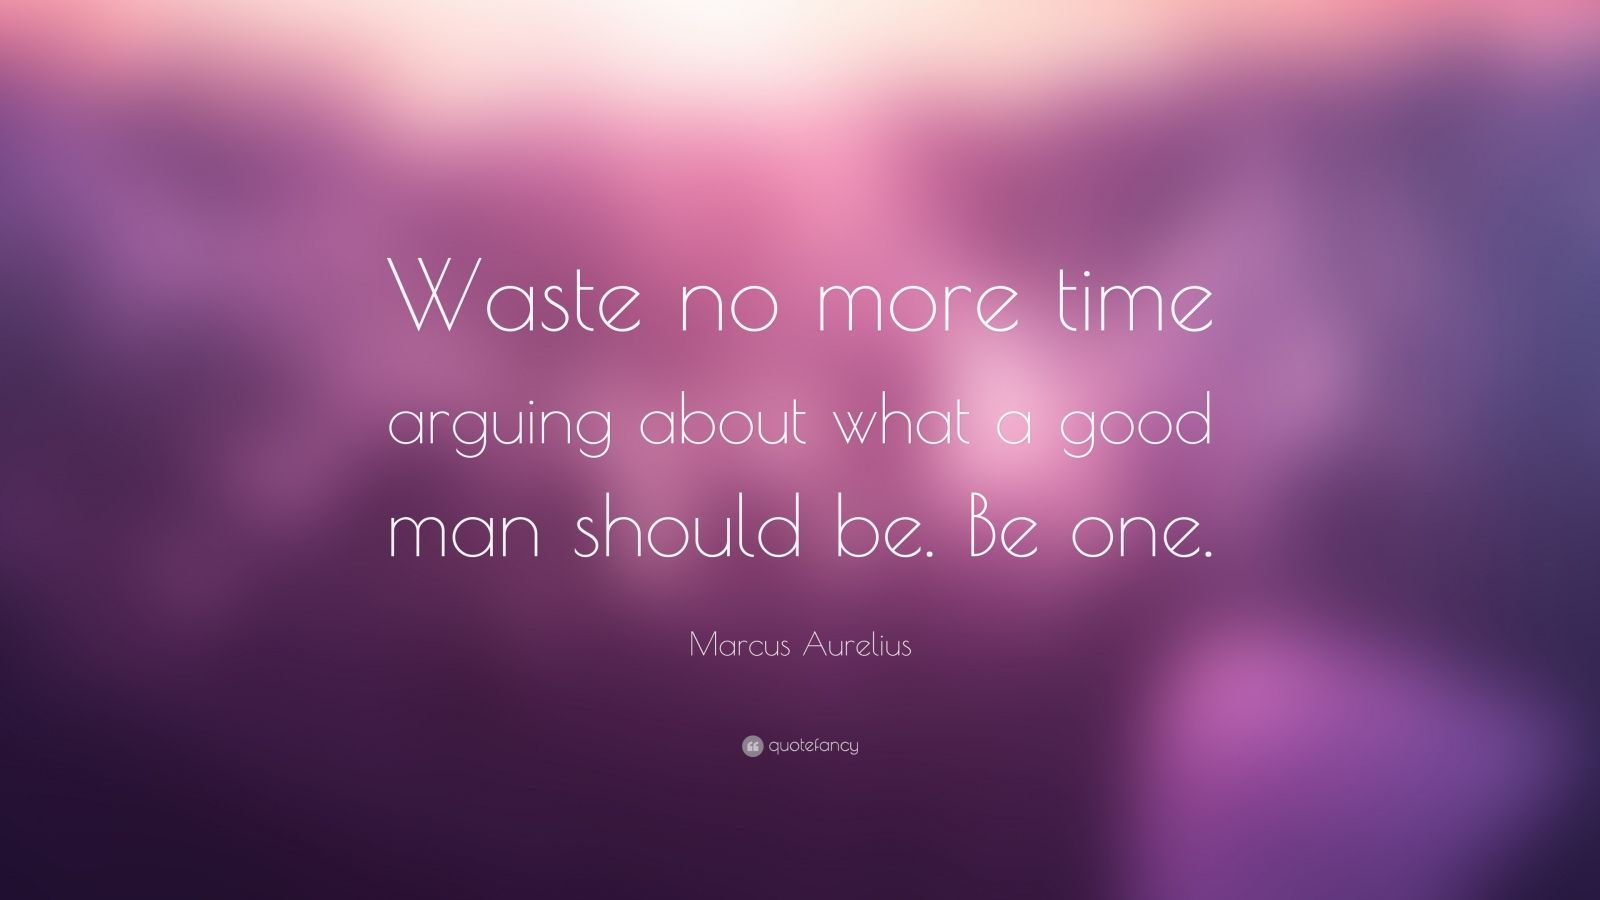 About Aurelius What Should Time One Good Man Be Arguing Waste No Be Marcus More